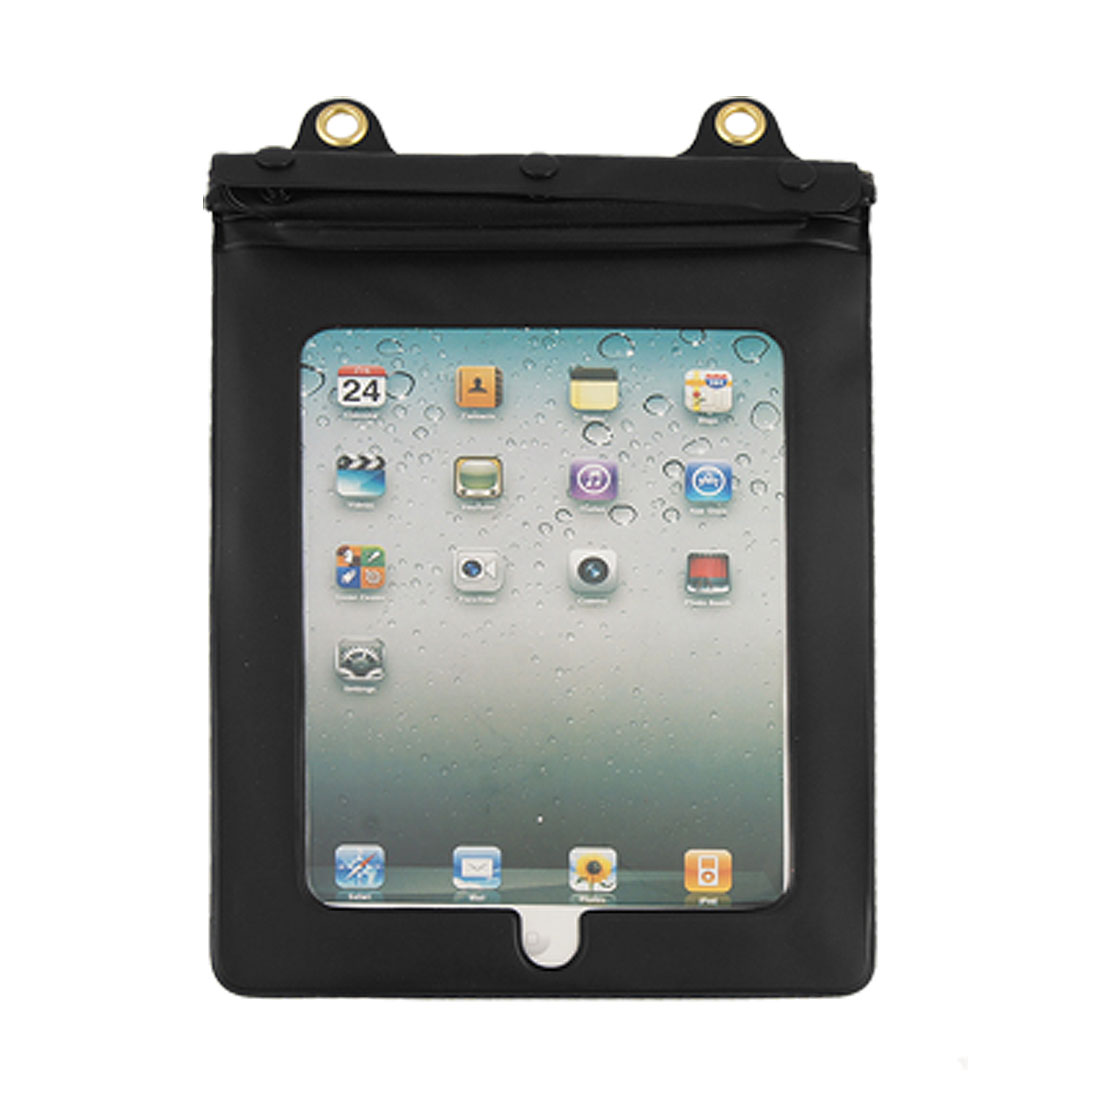 Waterproof Case Bag + Shoulder Strap + Earphone for Touch Screen